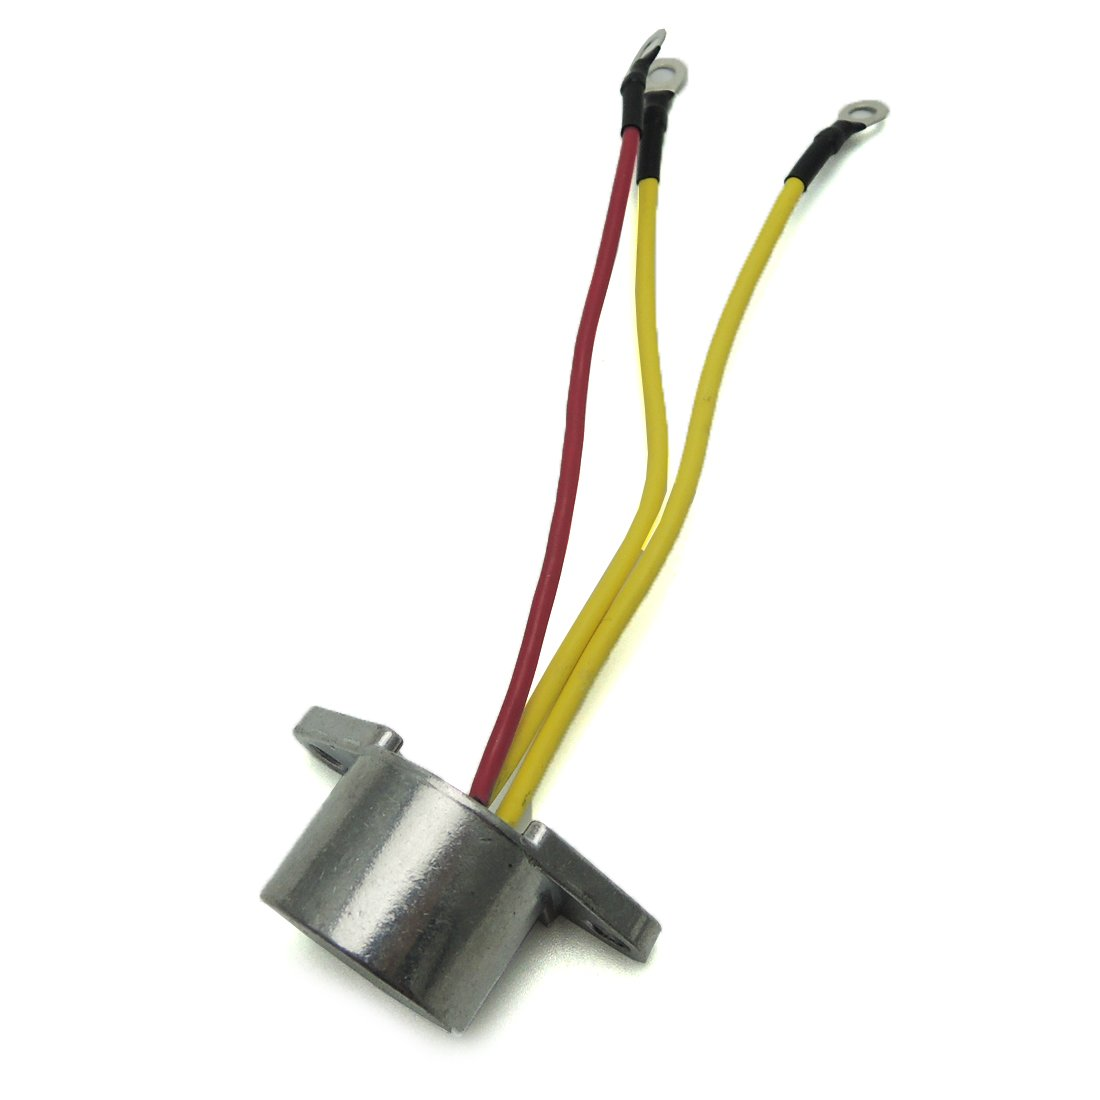 18 5708 583408 582399 Regulator Rectifier 3 Wires For Wire Voltage Wiring Diagram Get Free Image About Outboard Evinrude Johnson Sierra Automotive